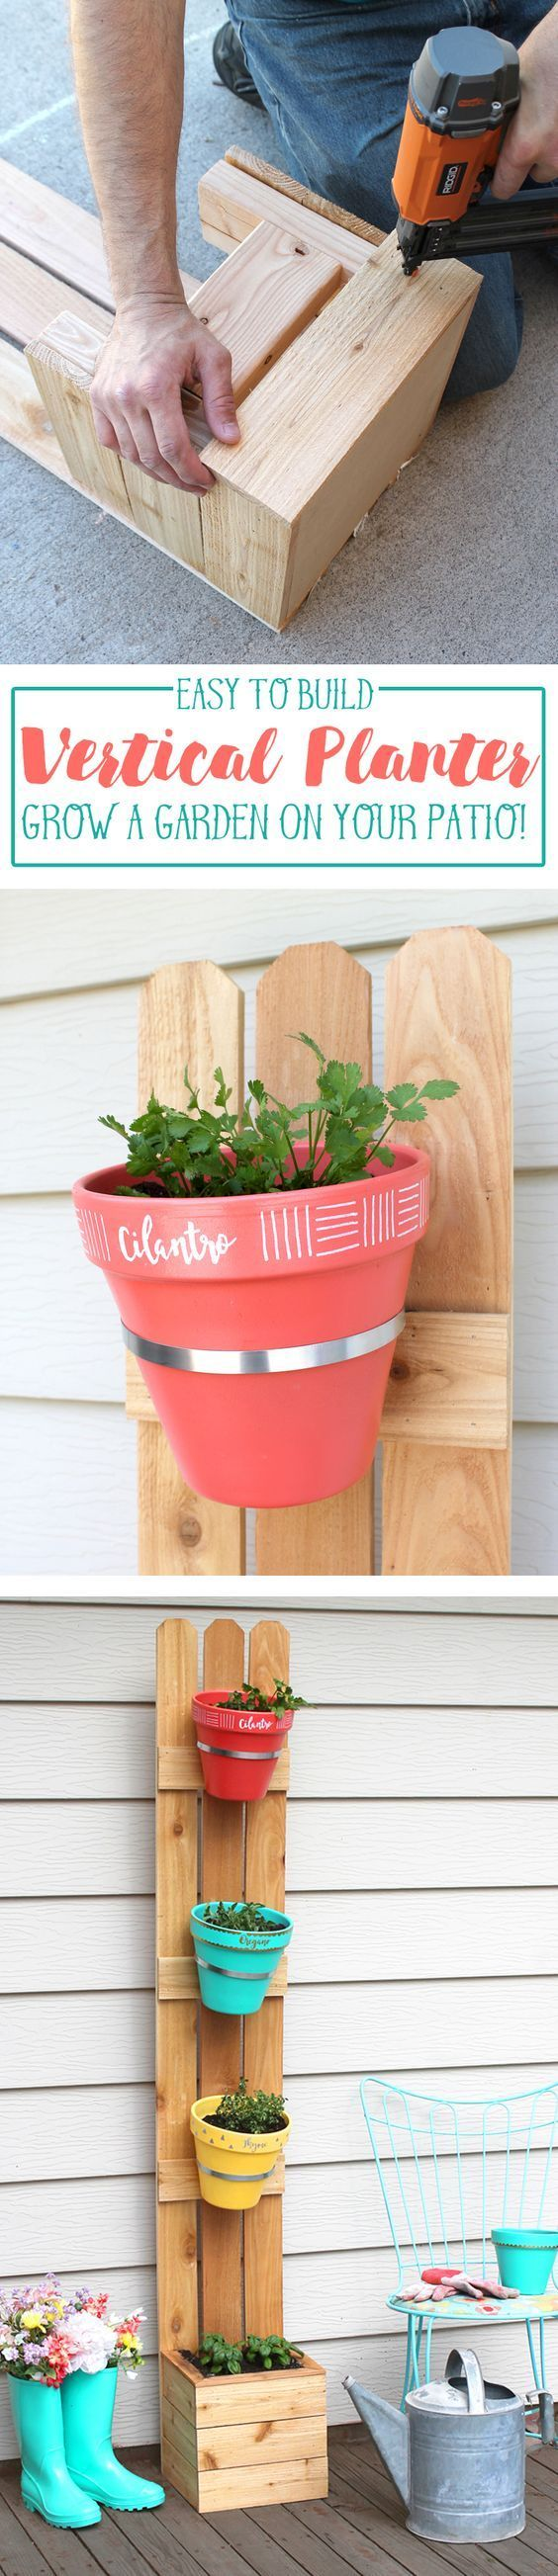 Build this adorable vertical planter perfect for growing flowers or herbs on the patio or porch. No space, no problem! A quick build and an easy DIY gardening project!